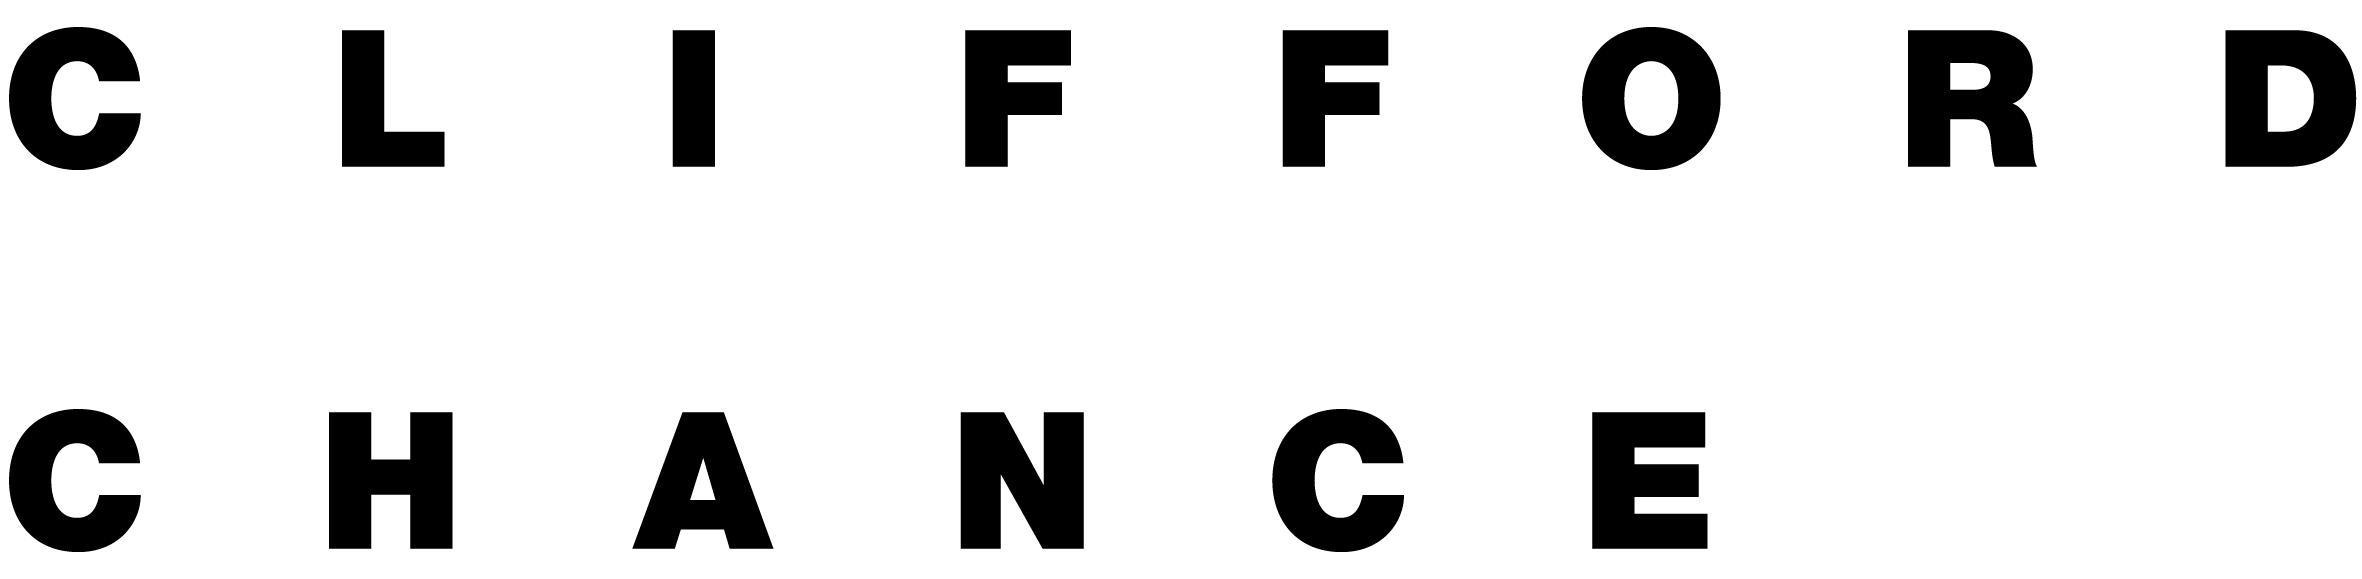 Clifford Chance Logo @ 200mm-01-01